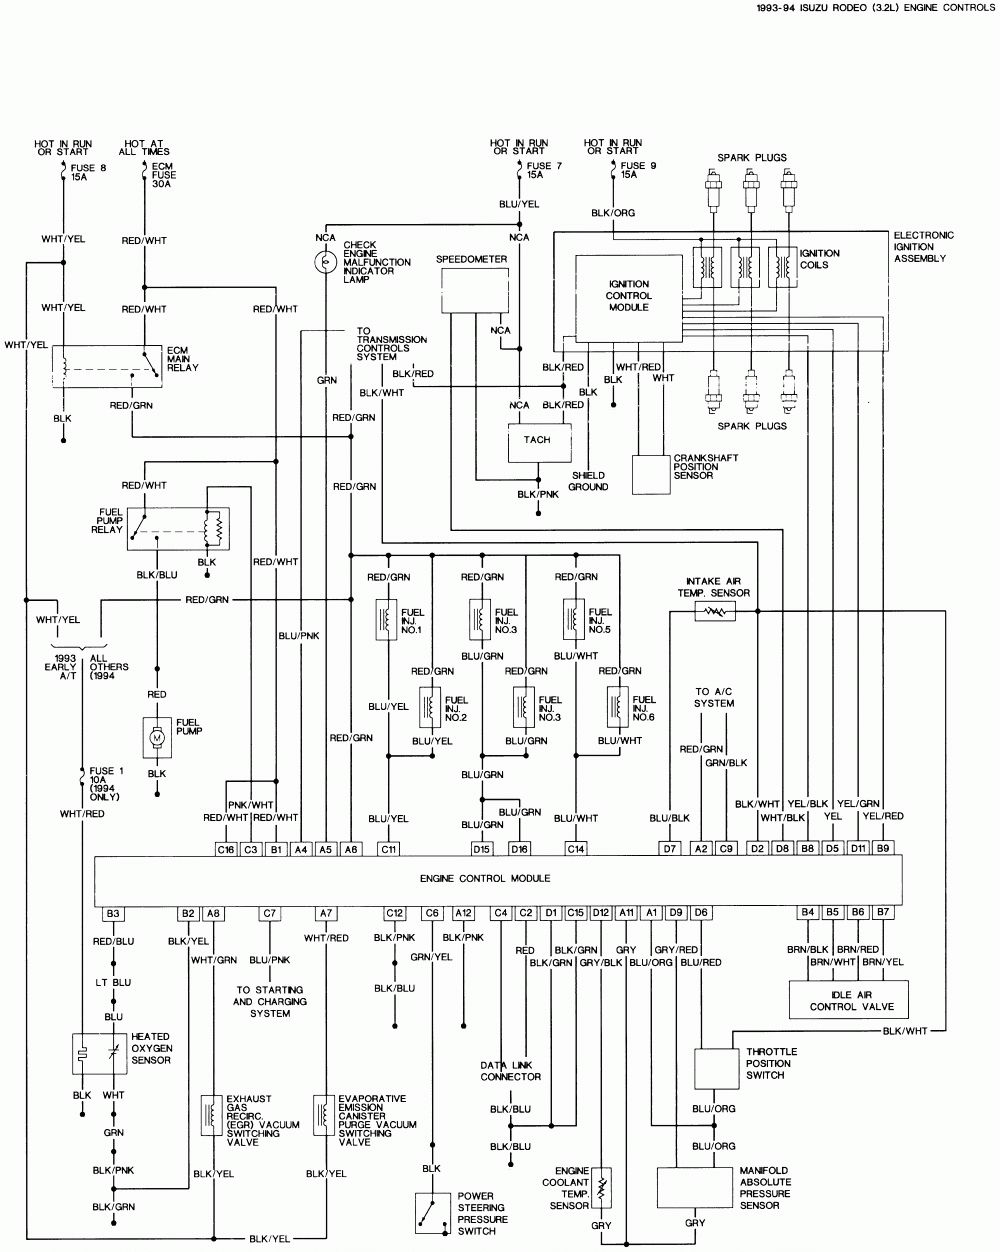 1990 Isuzu Wiring Diagram - Electrical Drawing Wiring Diagram • pertaining  to 1990 Jeep Wrangler Wiring Diagram | Repair guide, Jeep, DiagramPinterest